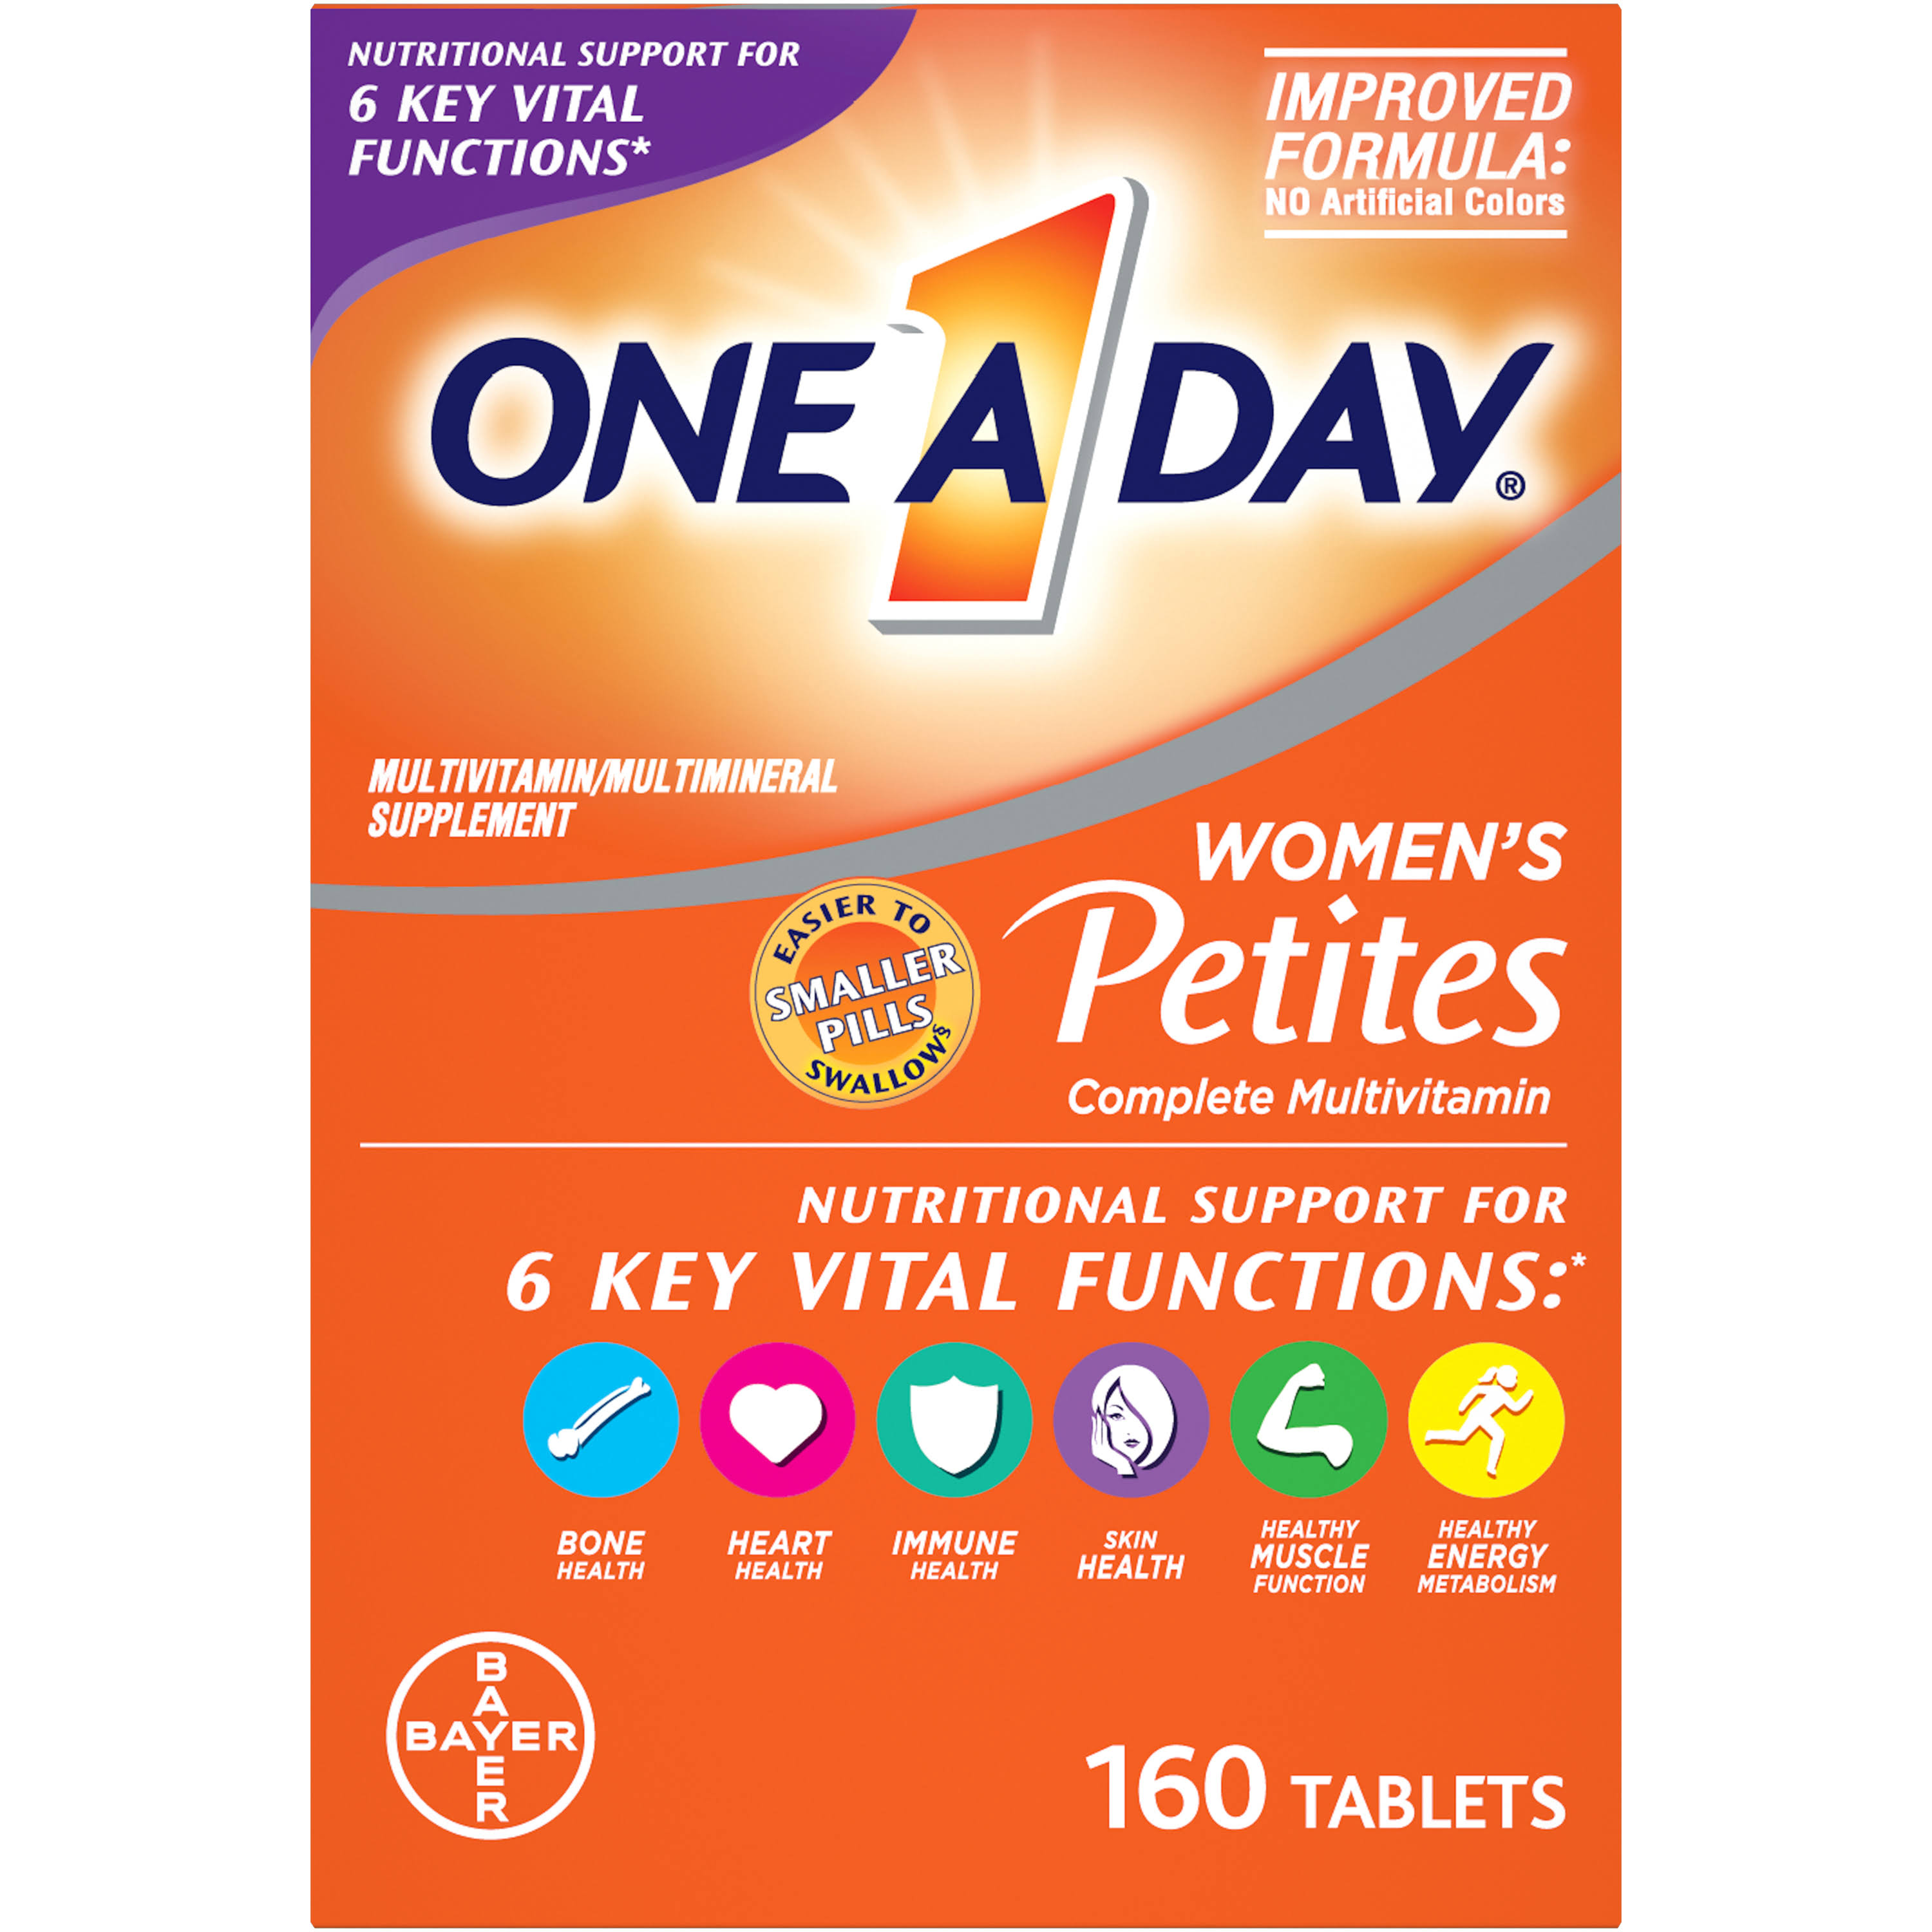 One a Day Womens Petites Complete Multivitamin Supplement - 160ct